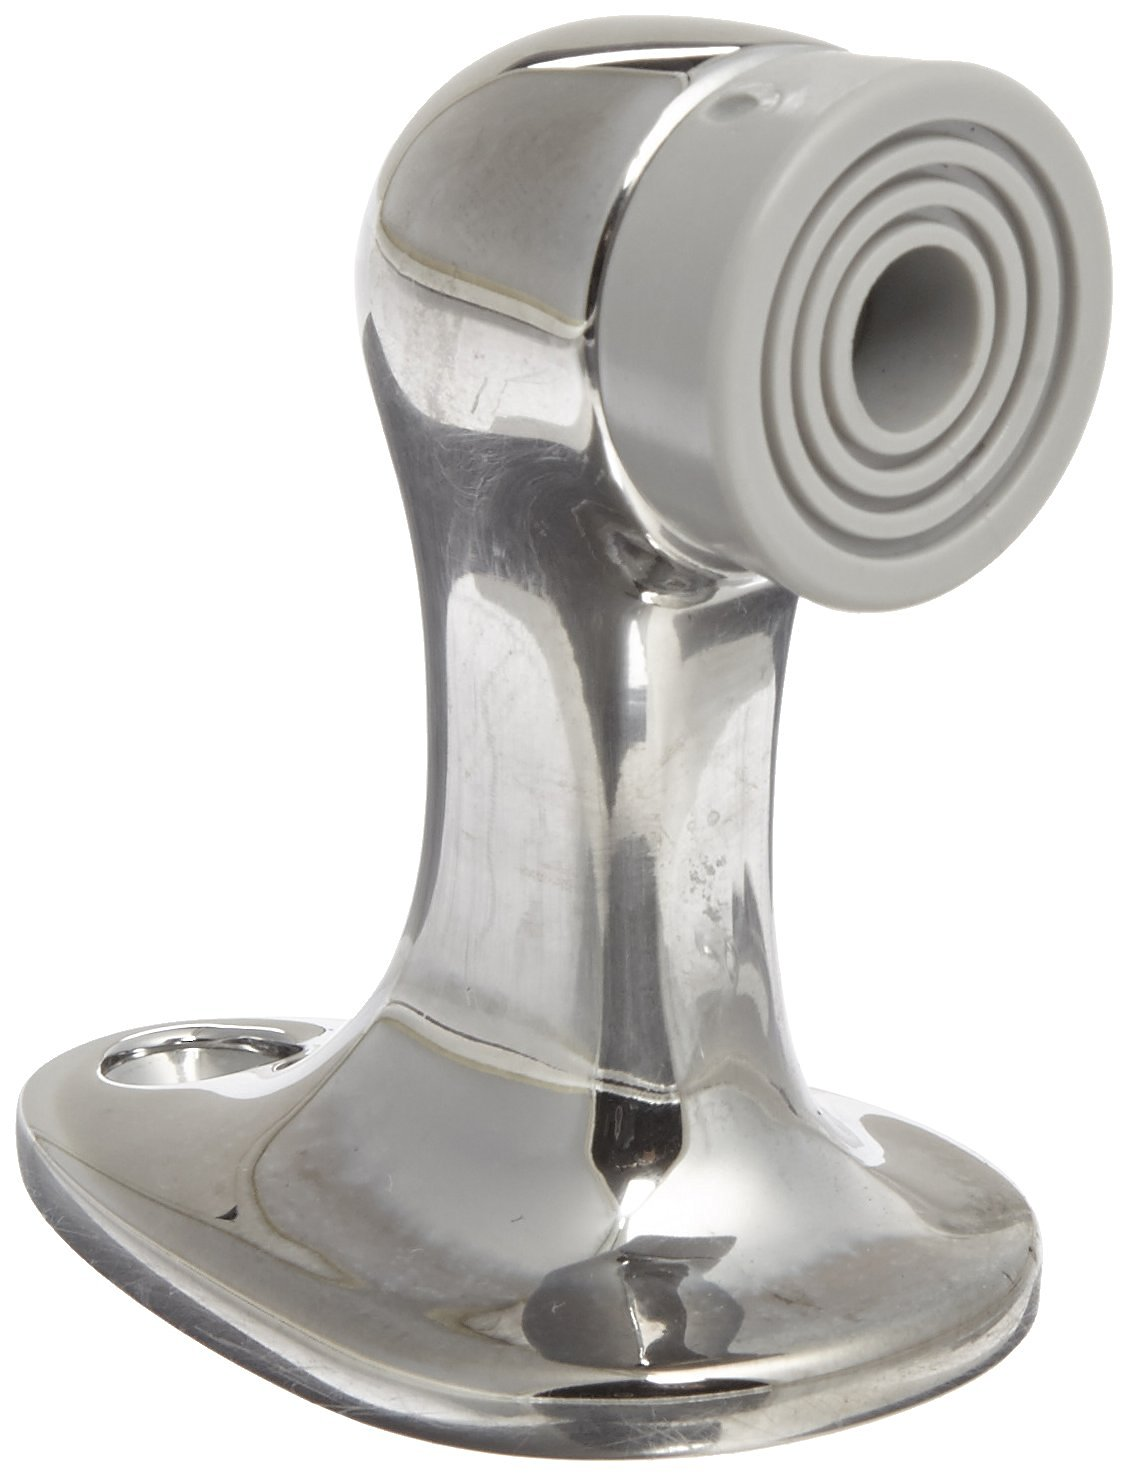 "Rockwood 483.26 Brass Door Stop, #12 x 1-1/4"" FH WS Fastener with Plastic Anchor, 1-5/8"" Base Width x 2-5/8"" Base Length, 2-3/4"" Height, Polished Chrome Plated Finish"